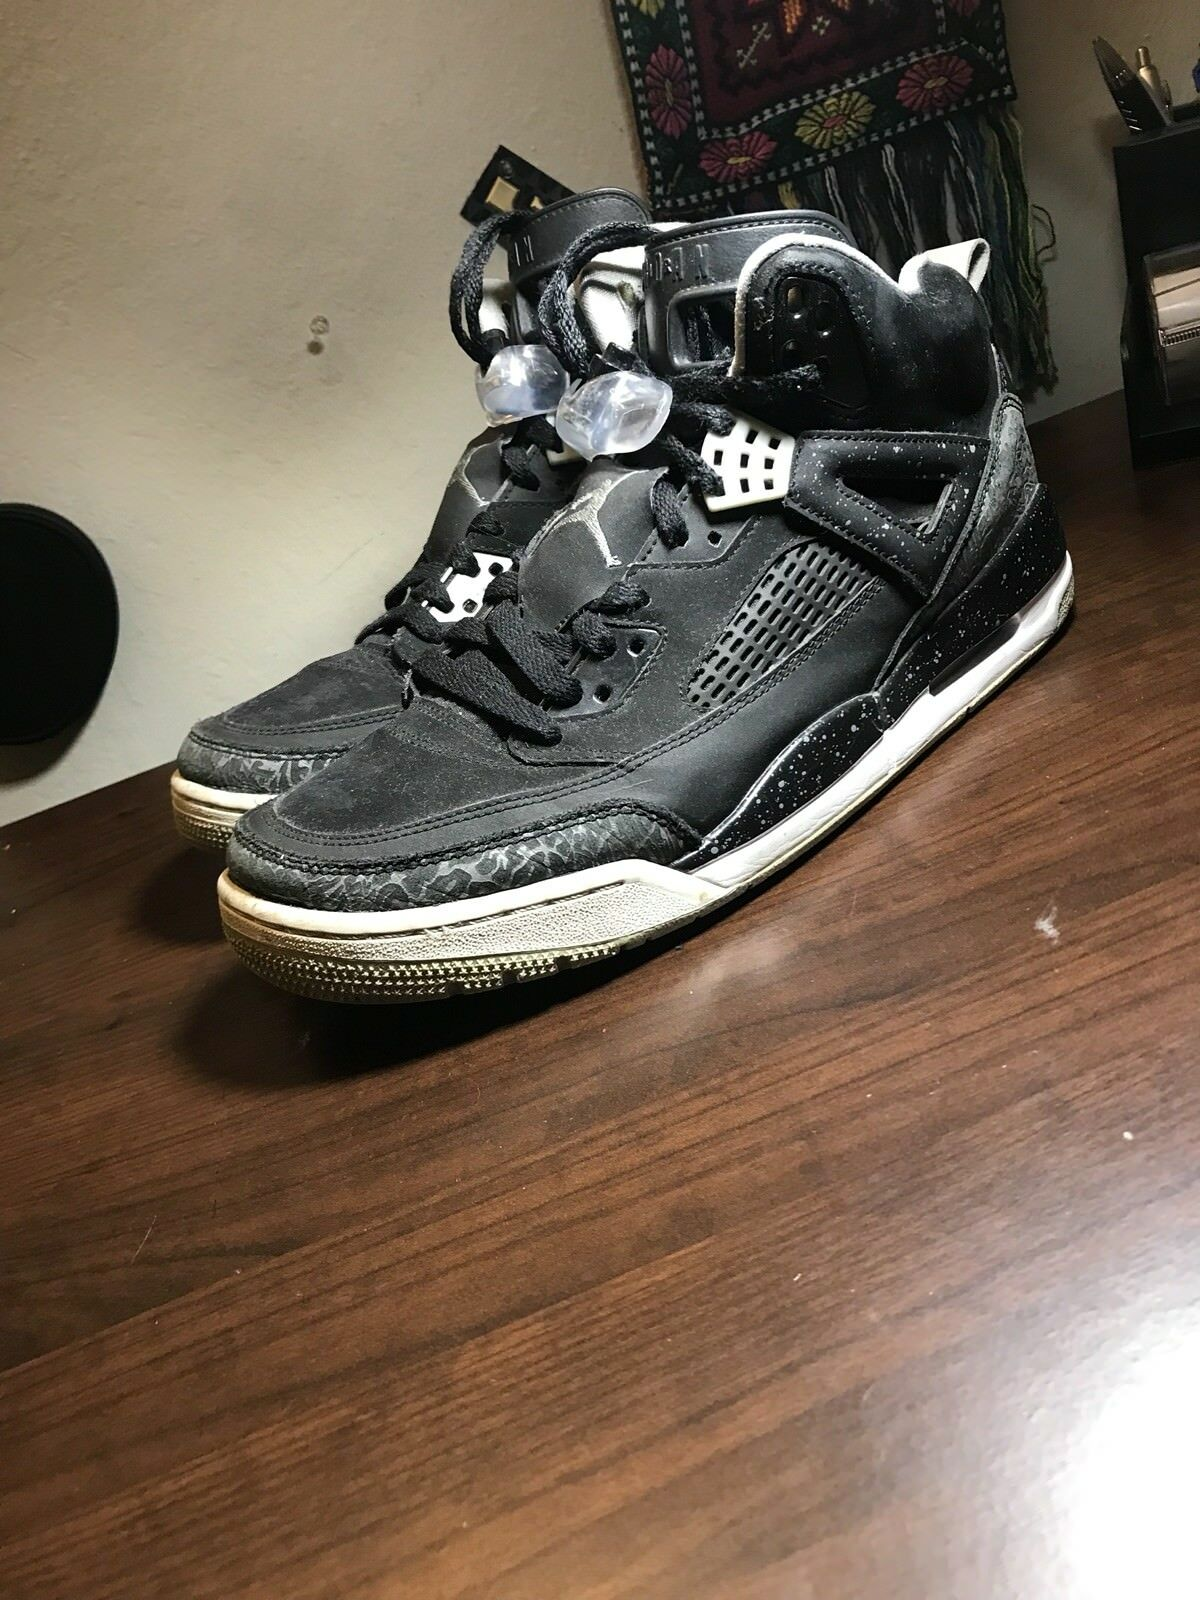 Jordans Spizike Men's 315371-004 Cool Grey Black white size 10